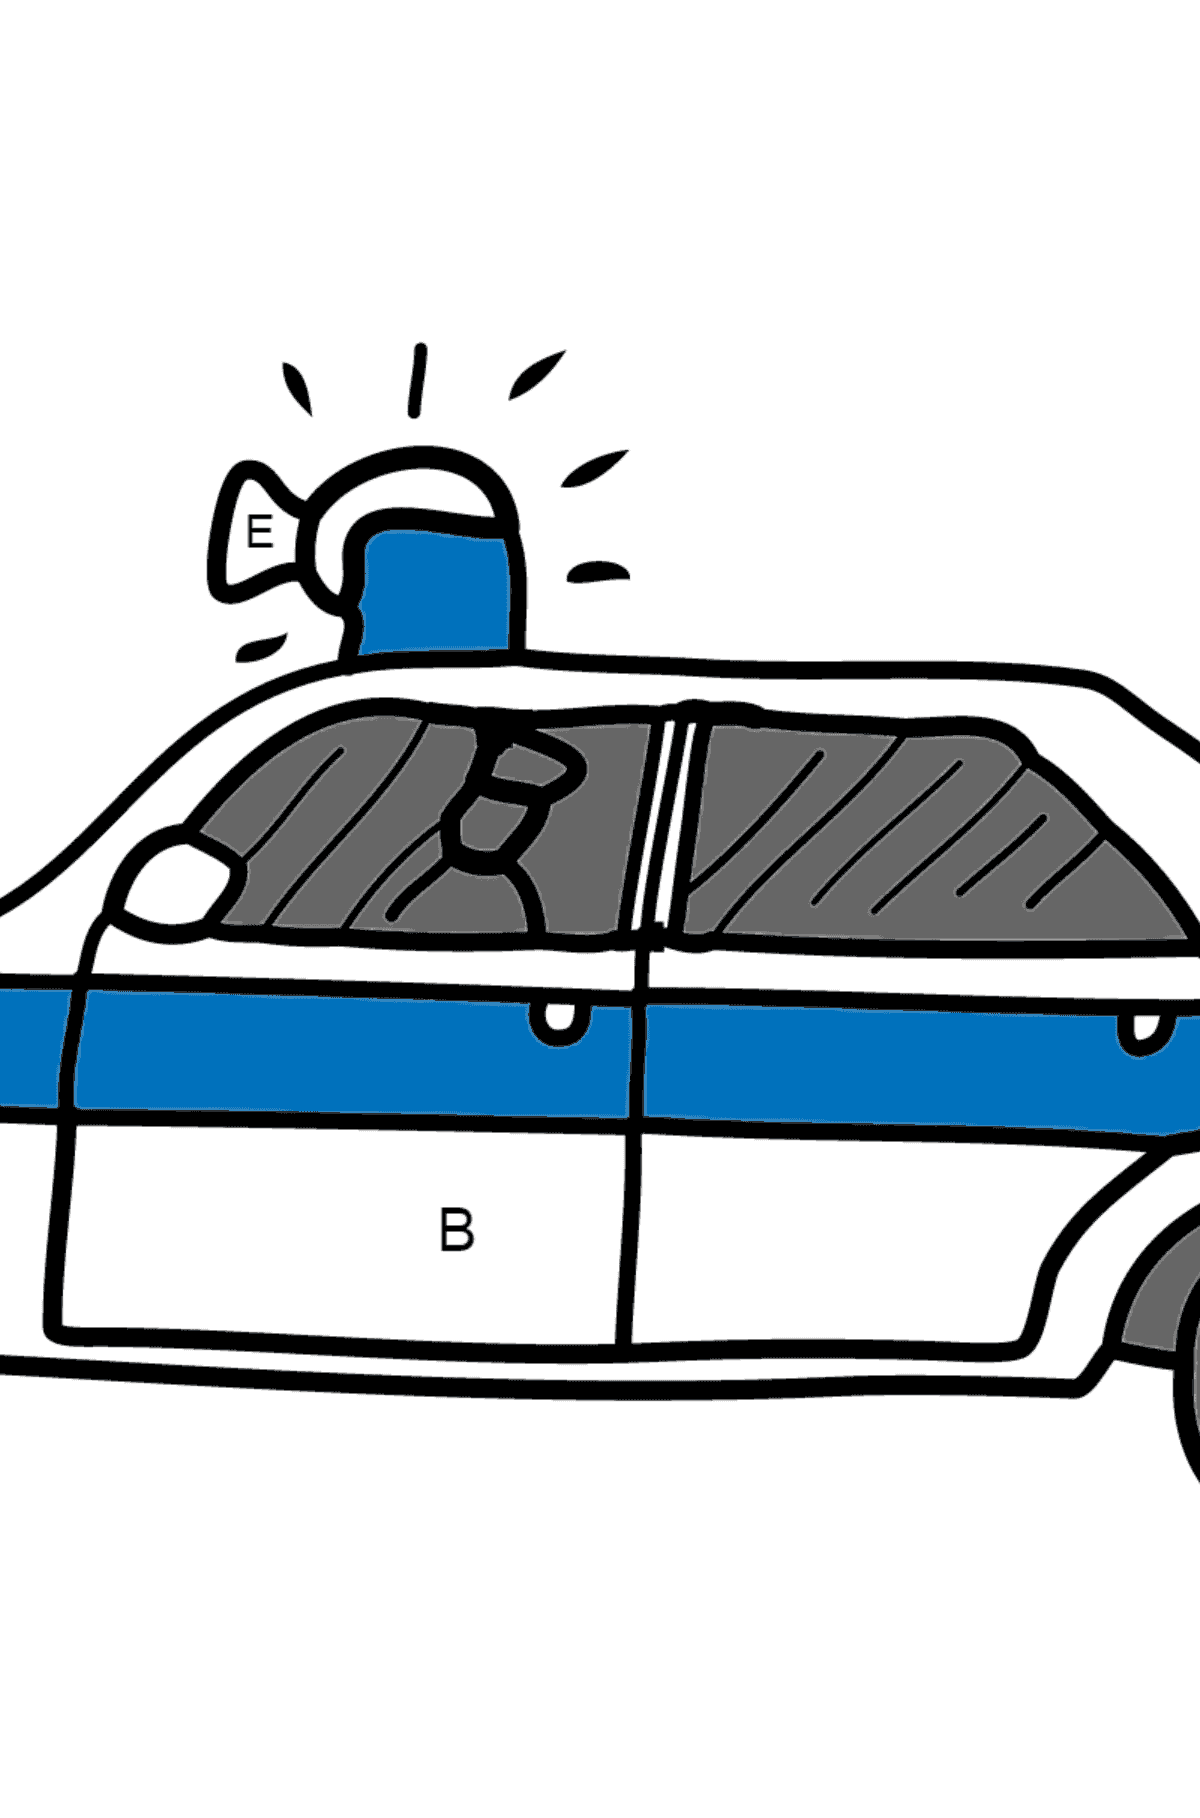 Coloring Page - A Police Car for Children  - Color by Letters